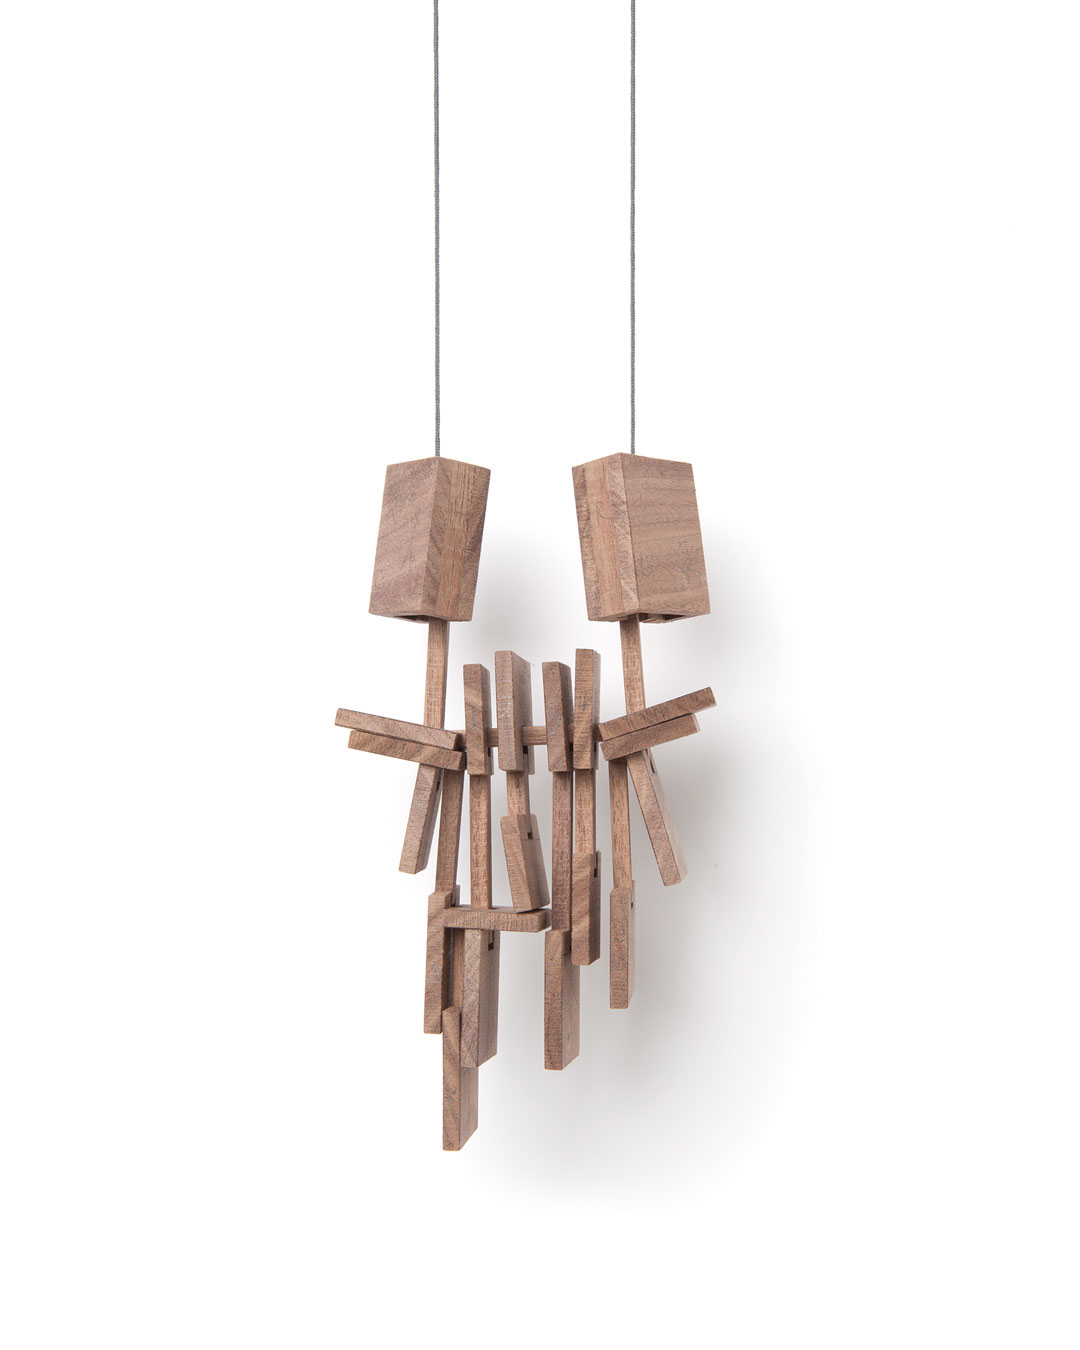 Despo Sophocleous, Momentarily Displaced 1, 2015, necklace; walnut, steel, cotton, 180 x 95 x 30 mm, €1700